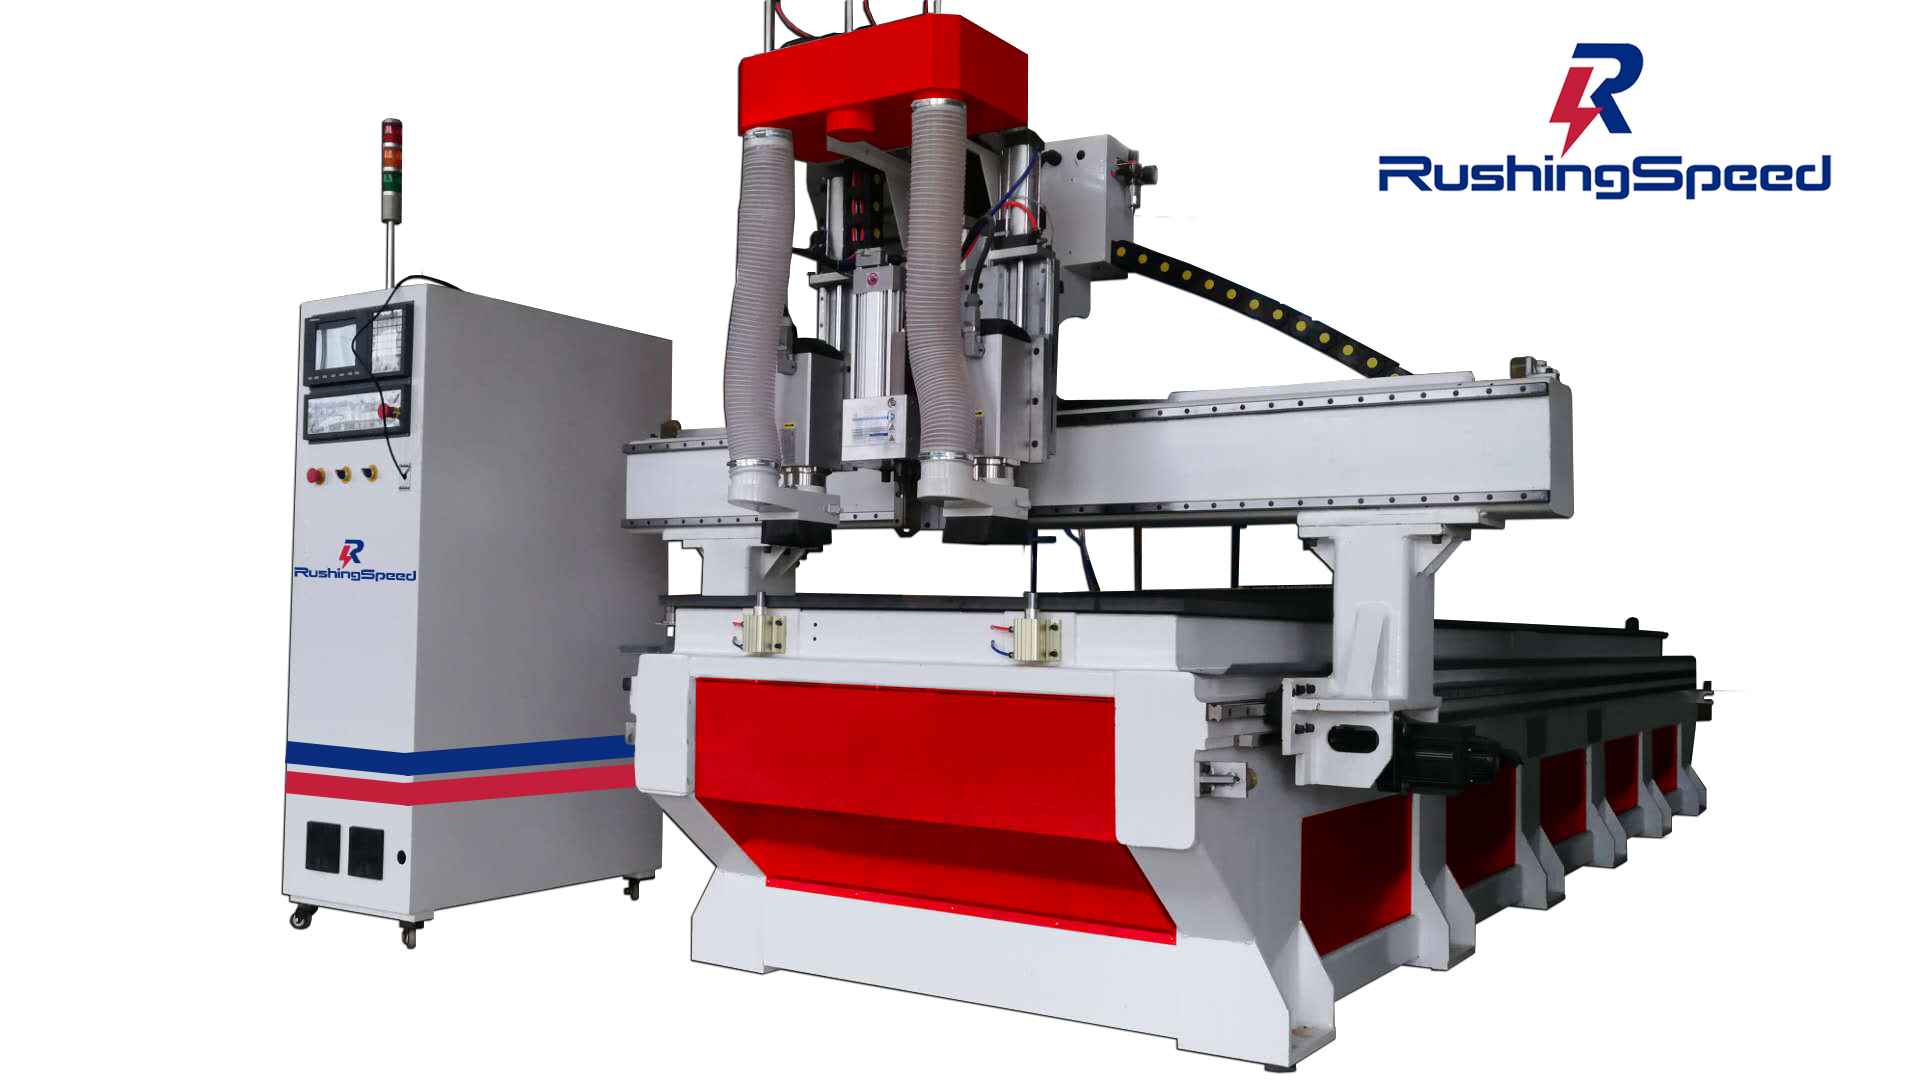 CNC Cutting Router Machine RSP-2500/D2B